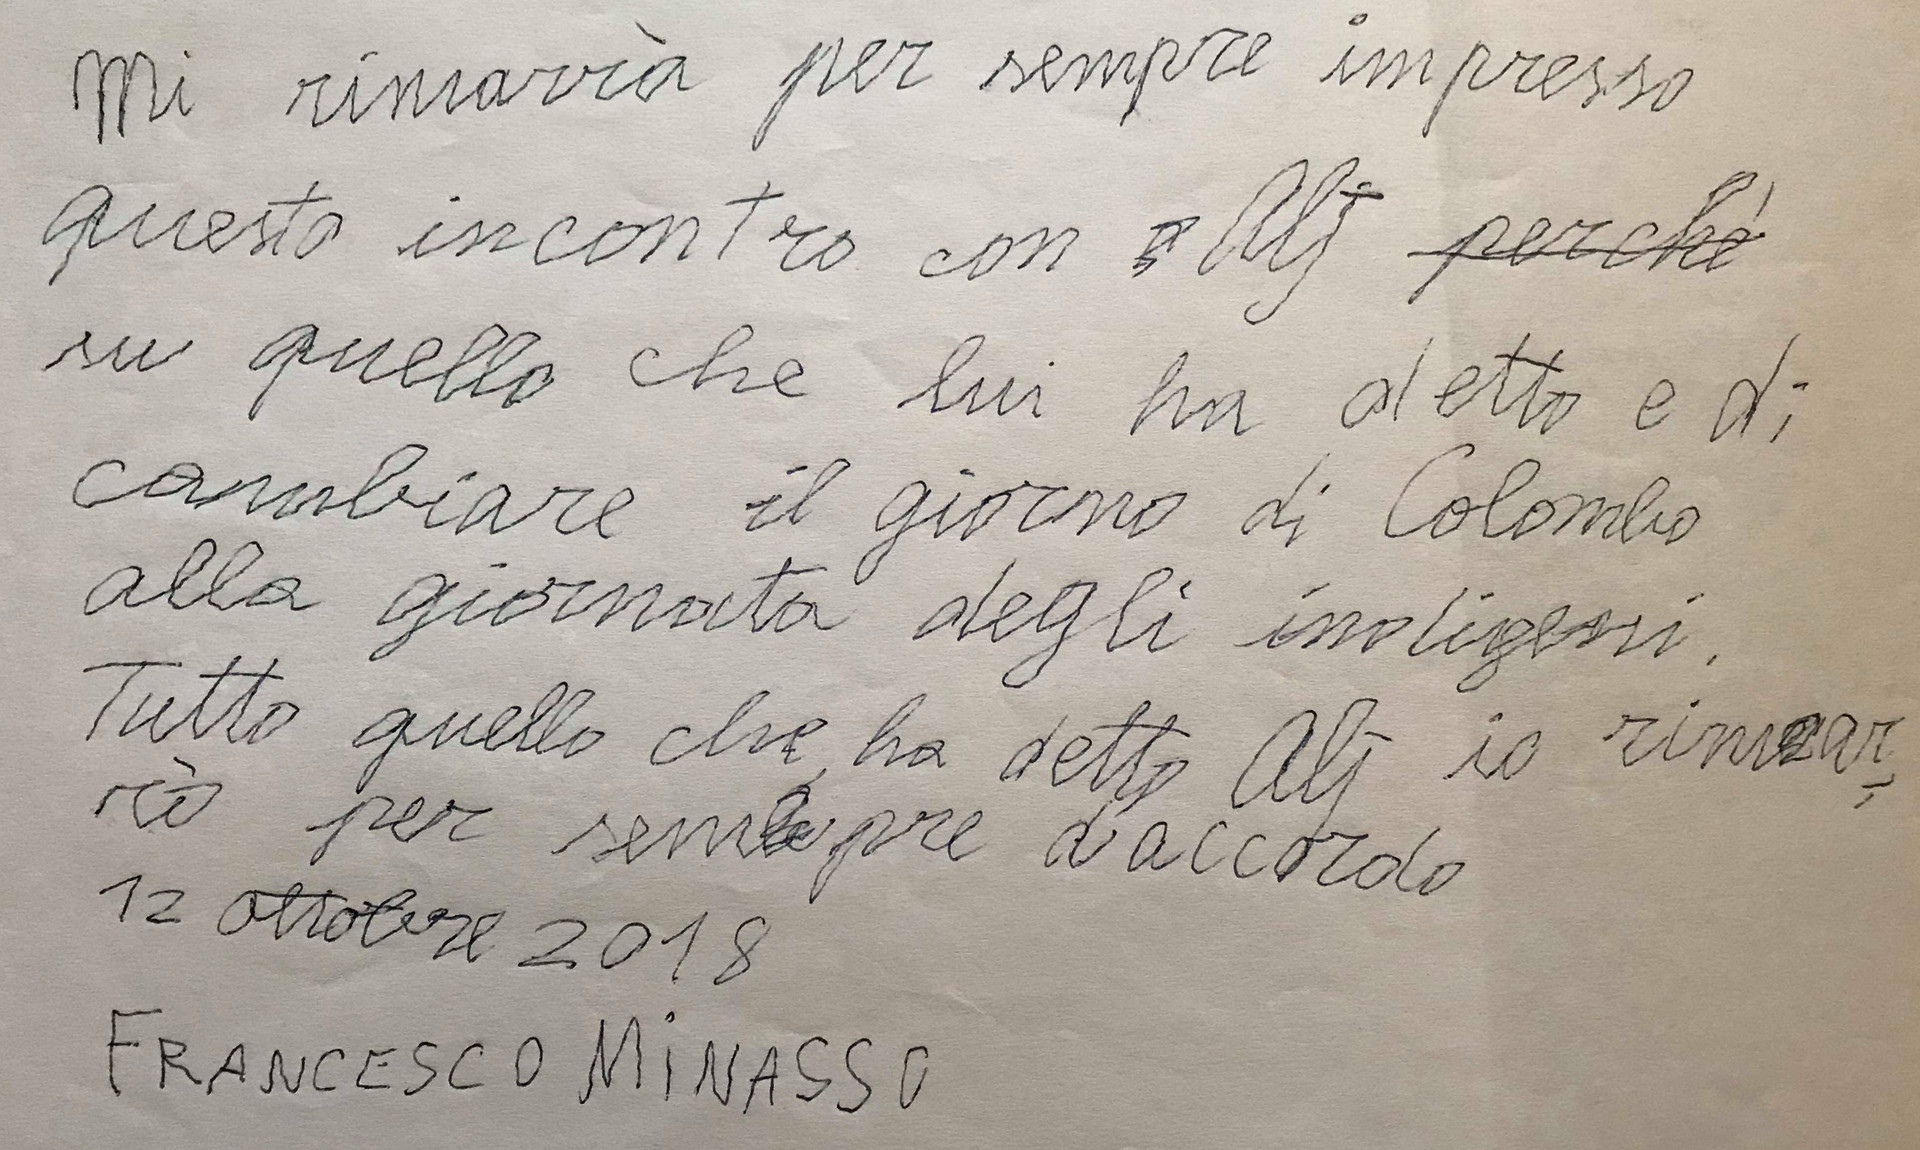 This meeting with AJ will always remain imprinted for what he said to change the day of Columbus into the Indigenous People Day. I will always agree with everything that AJ said 12 Ottobre 2018 Francesco Minasso